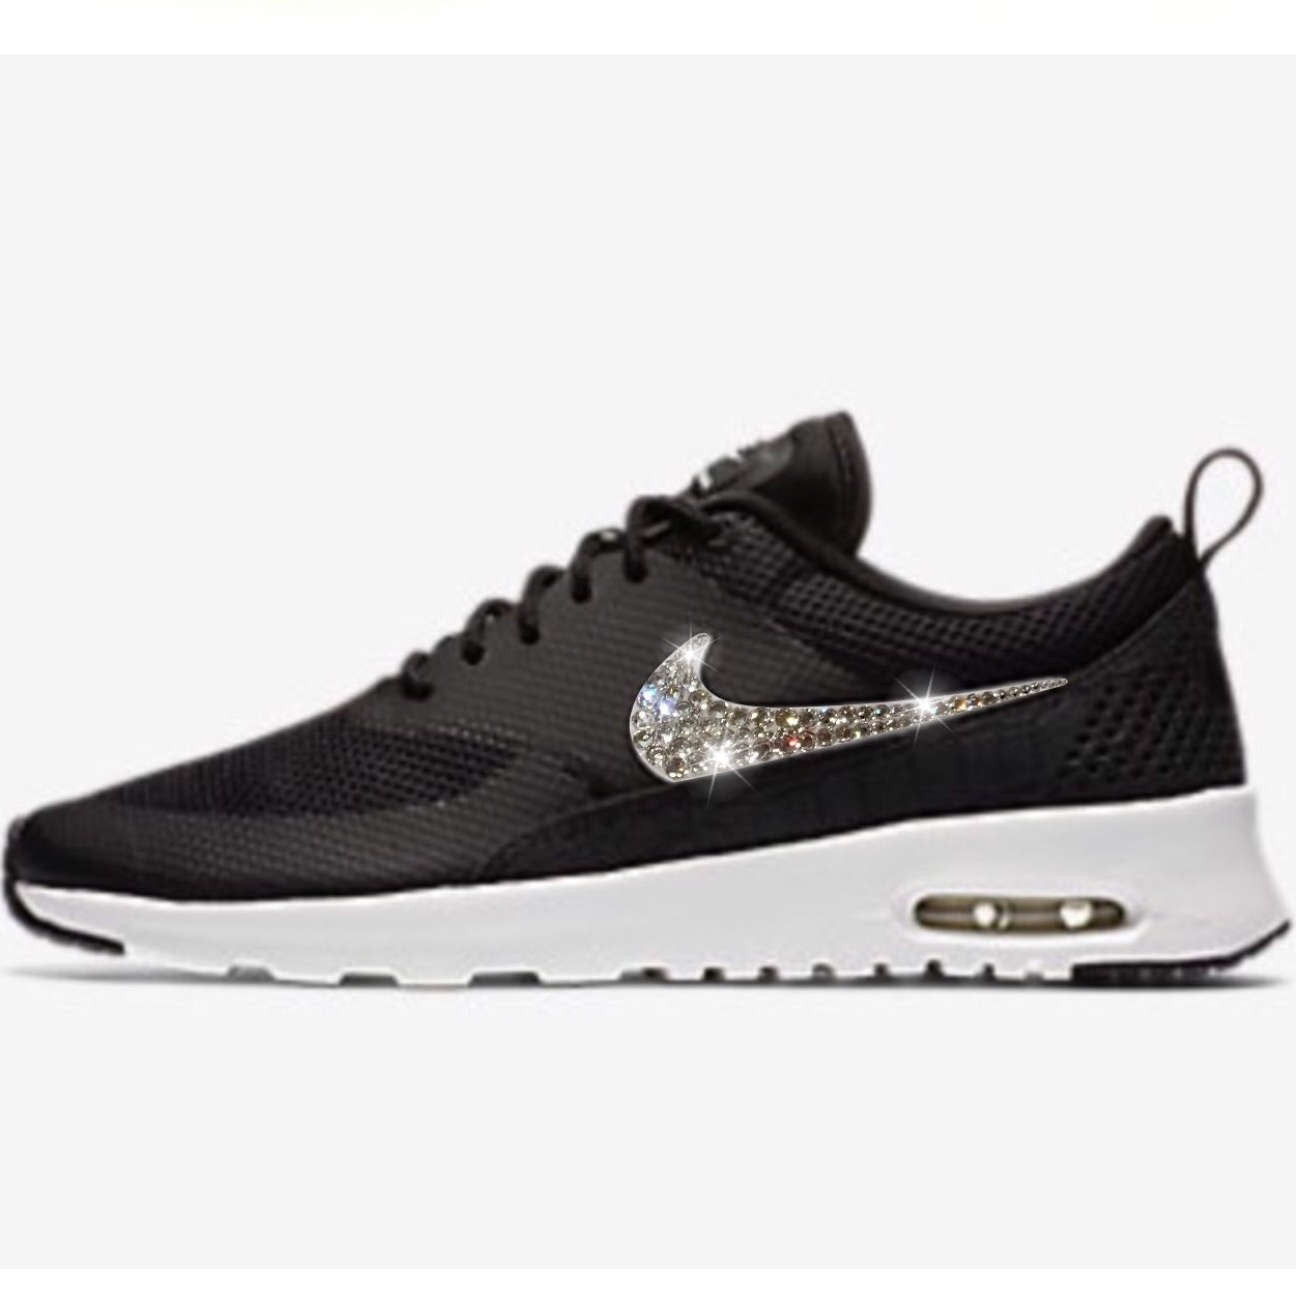 buy online 7a1c9 208c6 Bling Nike Air Max Thea Shoes with Swarovski Crystals   Black   White    Bedazzled with ...